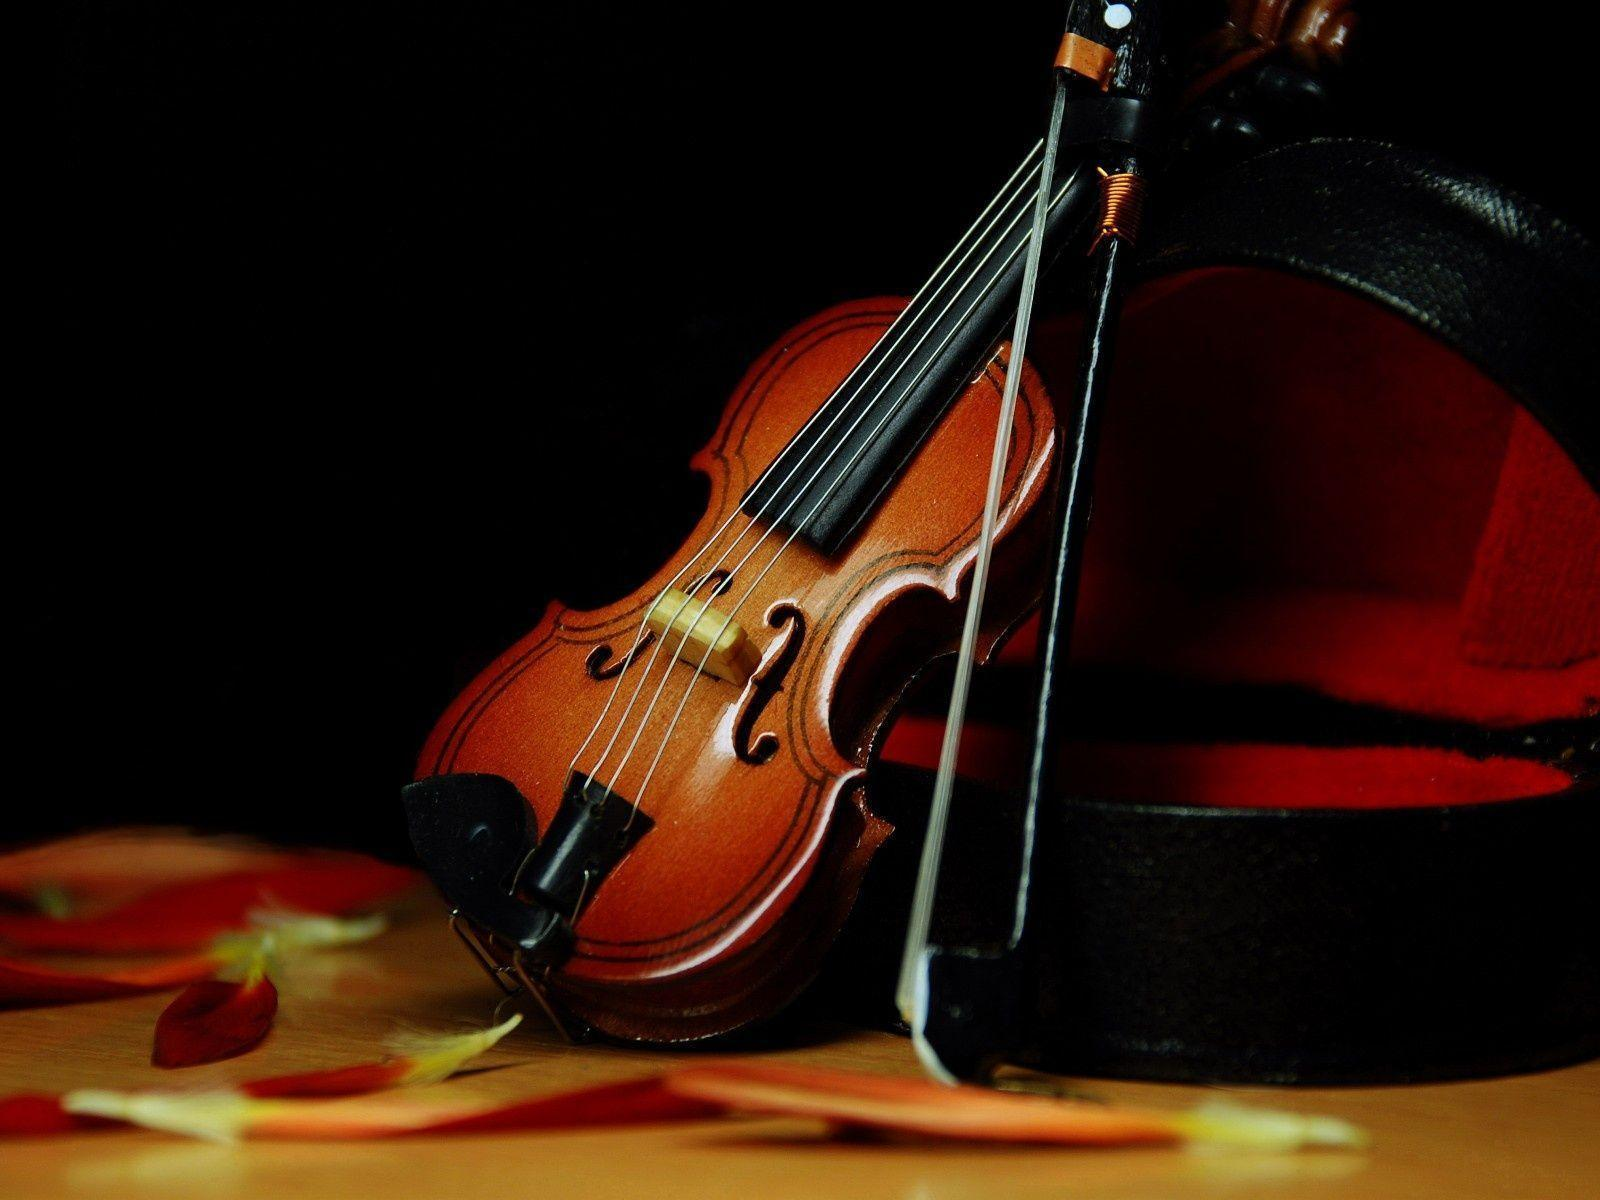 Violin Wallpaper Download 24655 | Wallpapers Photo